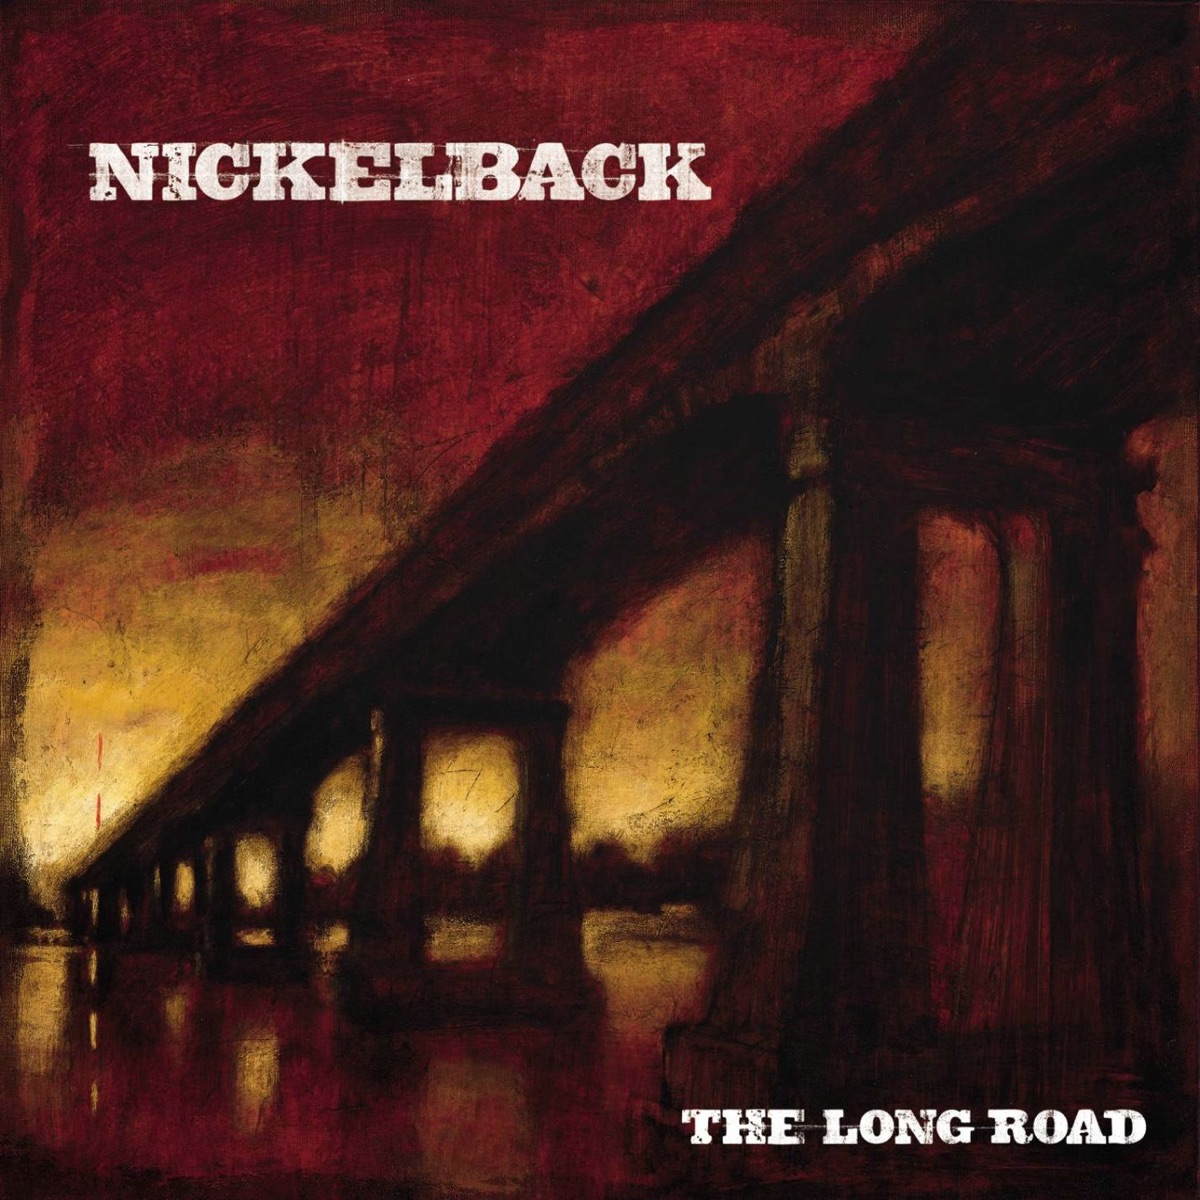 The Long Road Album Cover By Nickelback